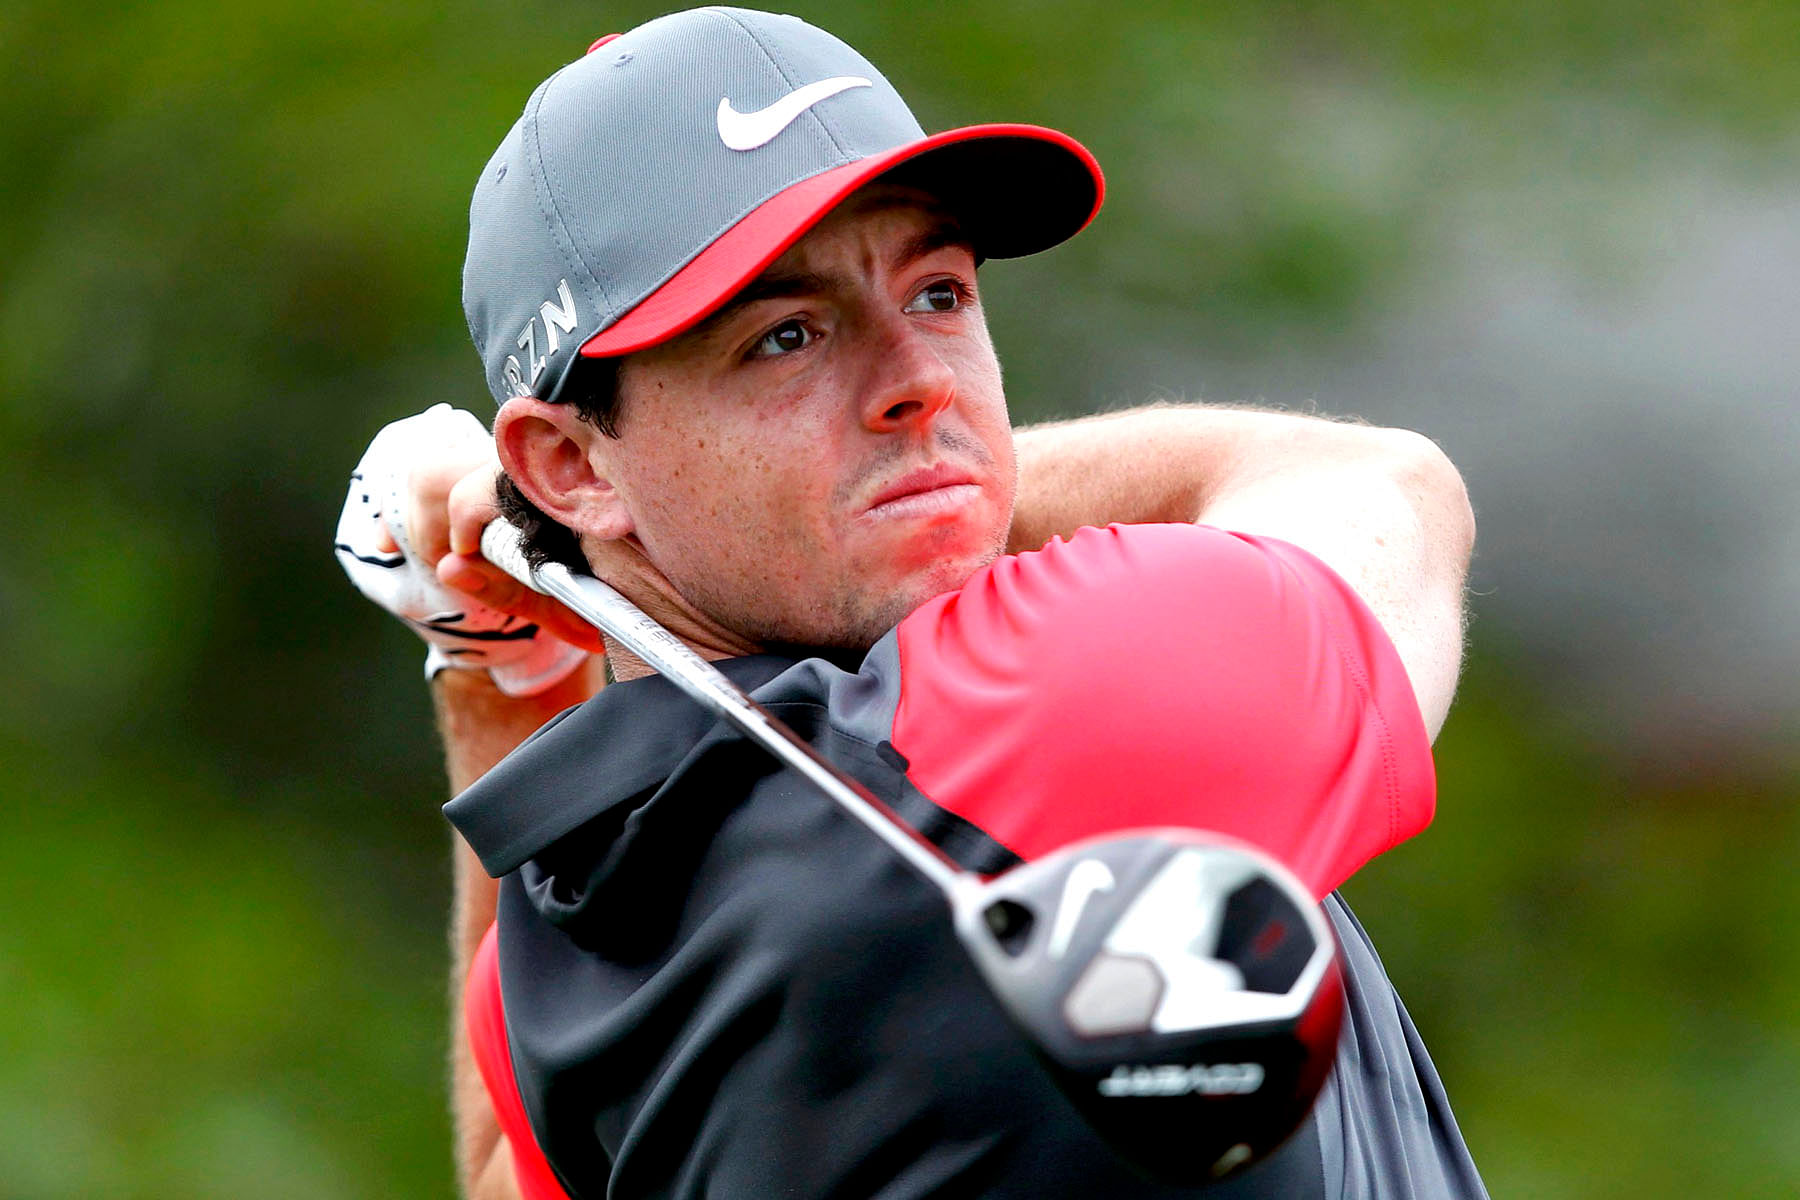 Rory McIlroy wins European Tour Player of Year award